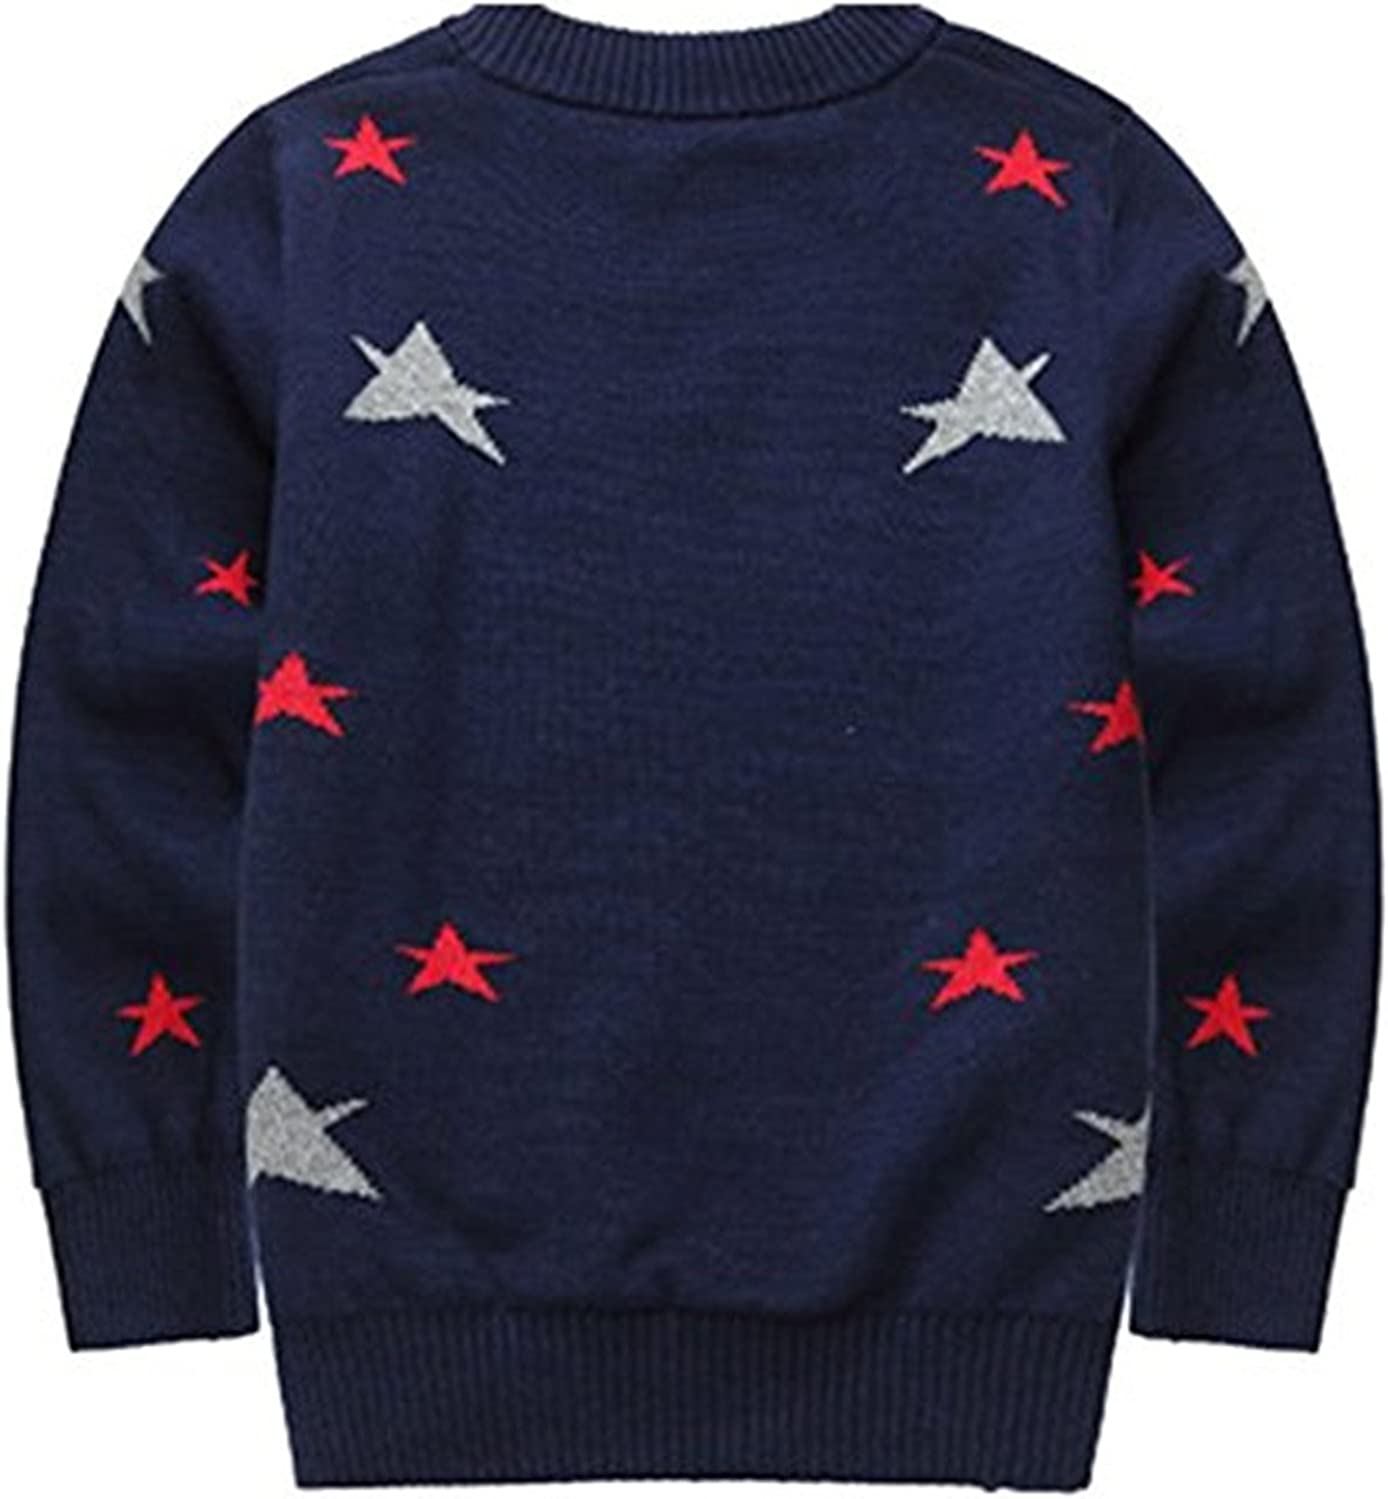 JELEUON Little and Big Boys Round Neck Long Sleeve Knit Pullover Sweater Sweatshirt